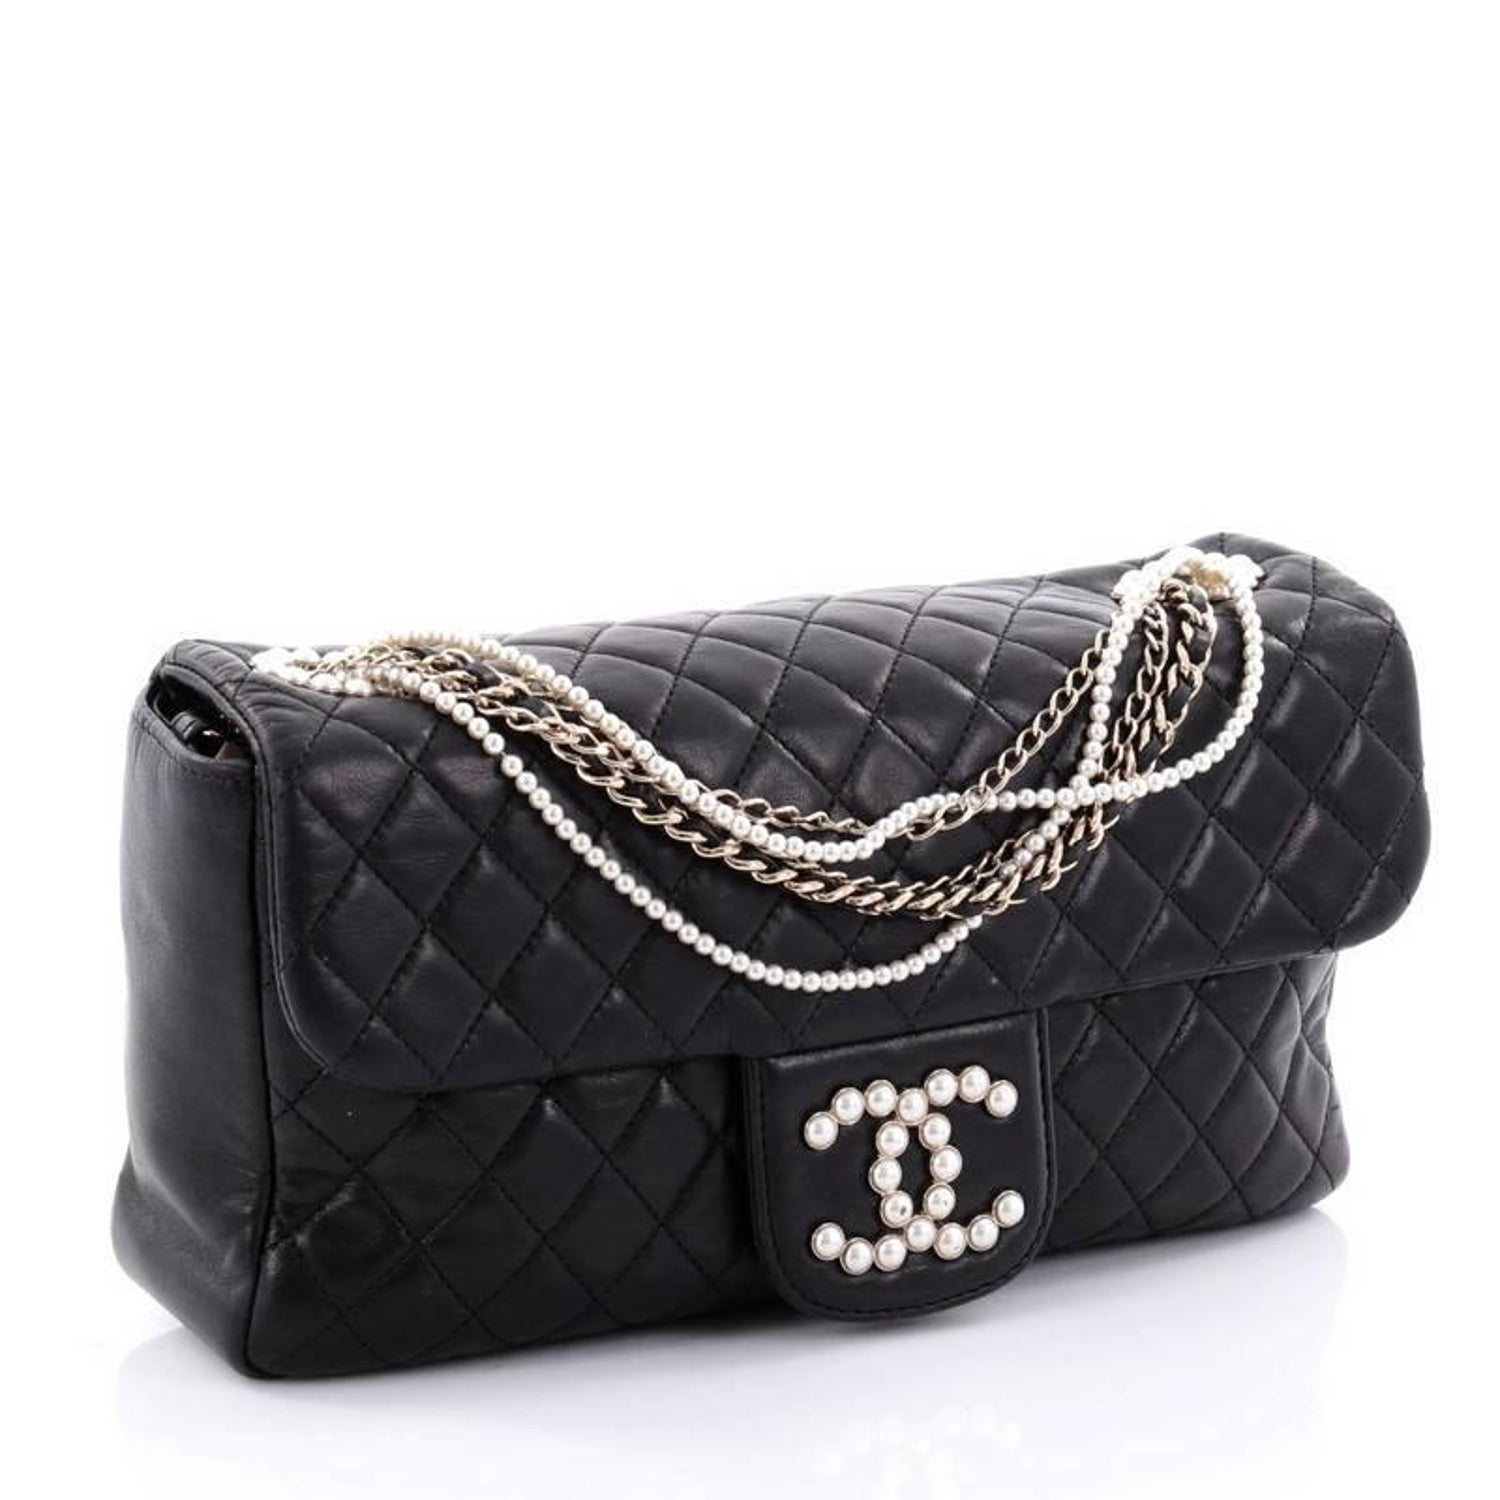 aecd9d1a759c Chanel Westminster Quilted Lambskin Medium Pearl Chain Flap Bag at 1stdibs